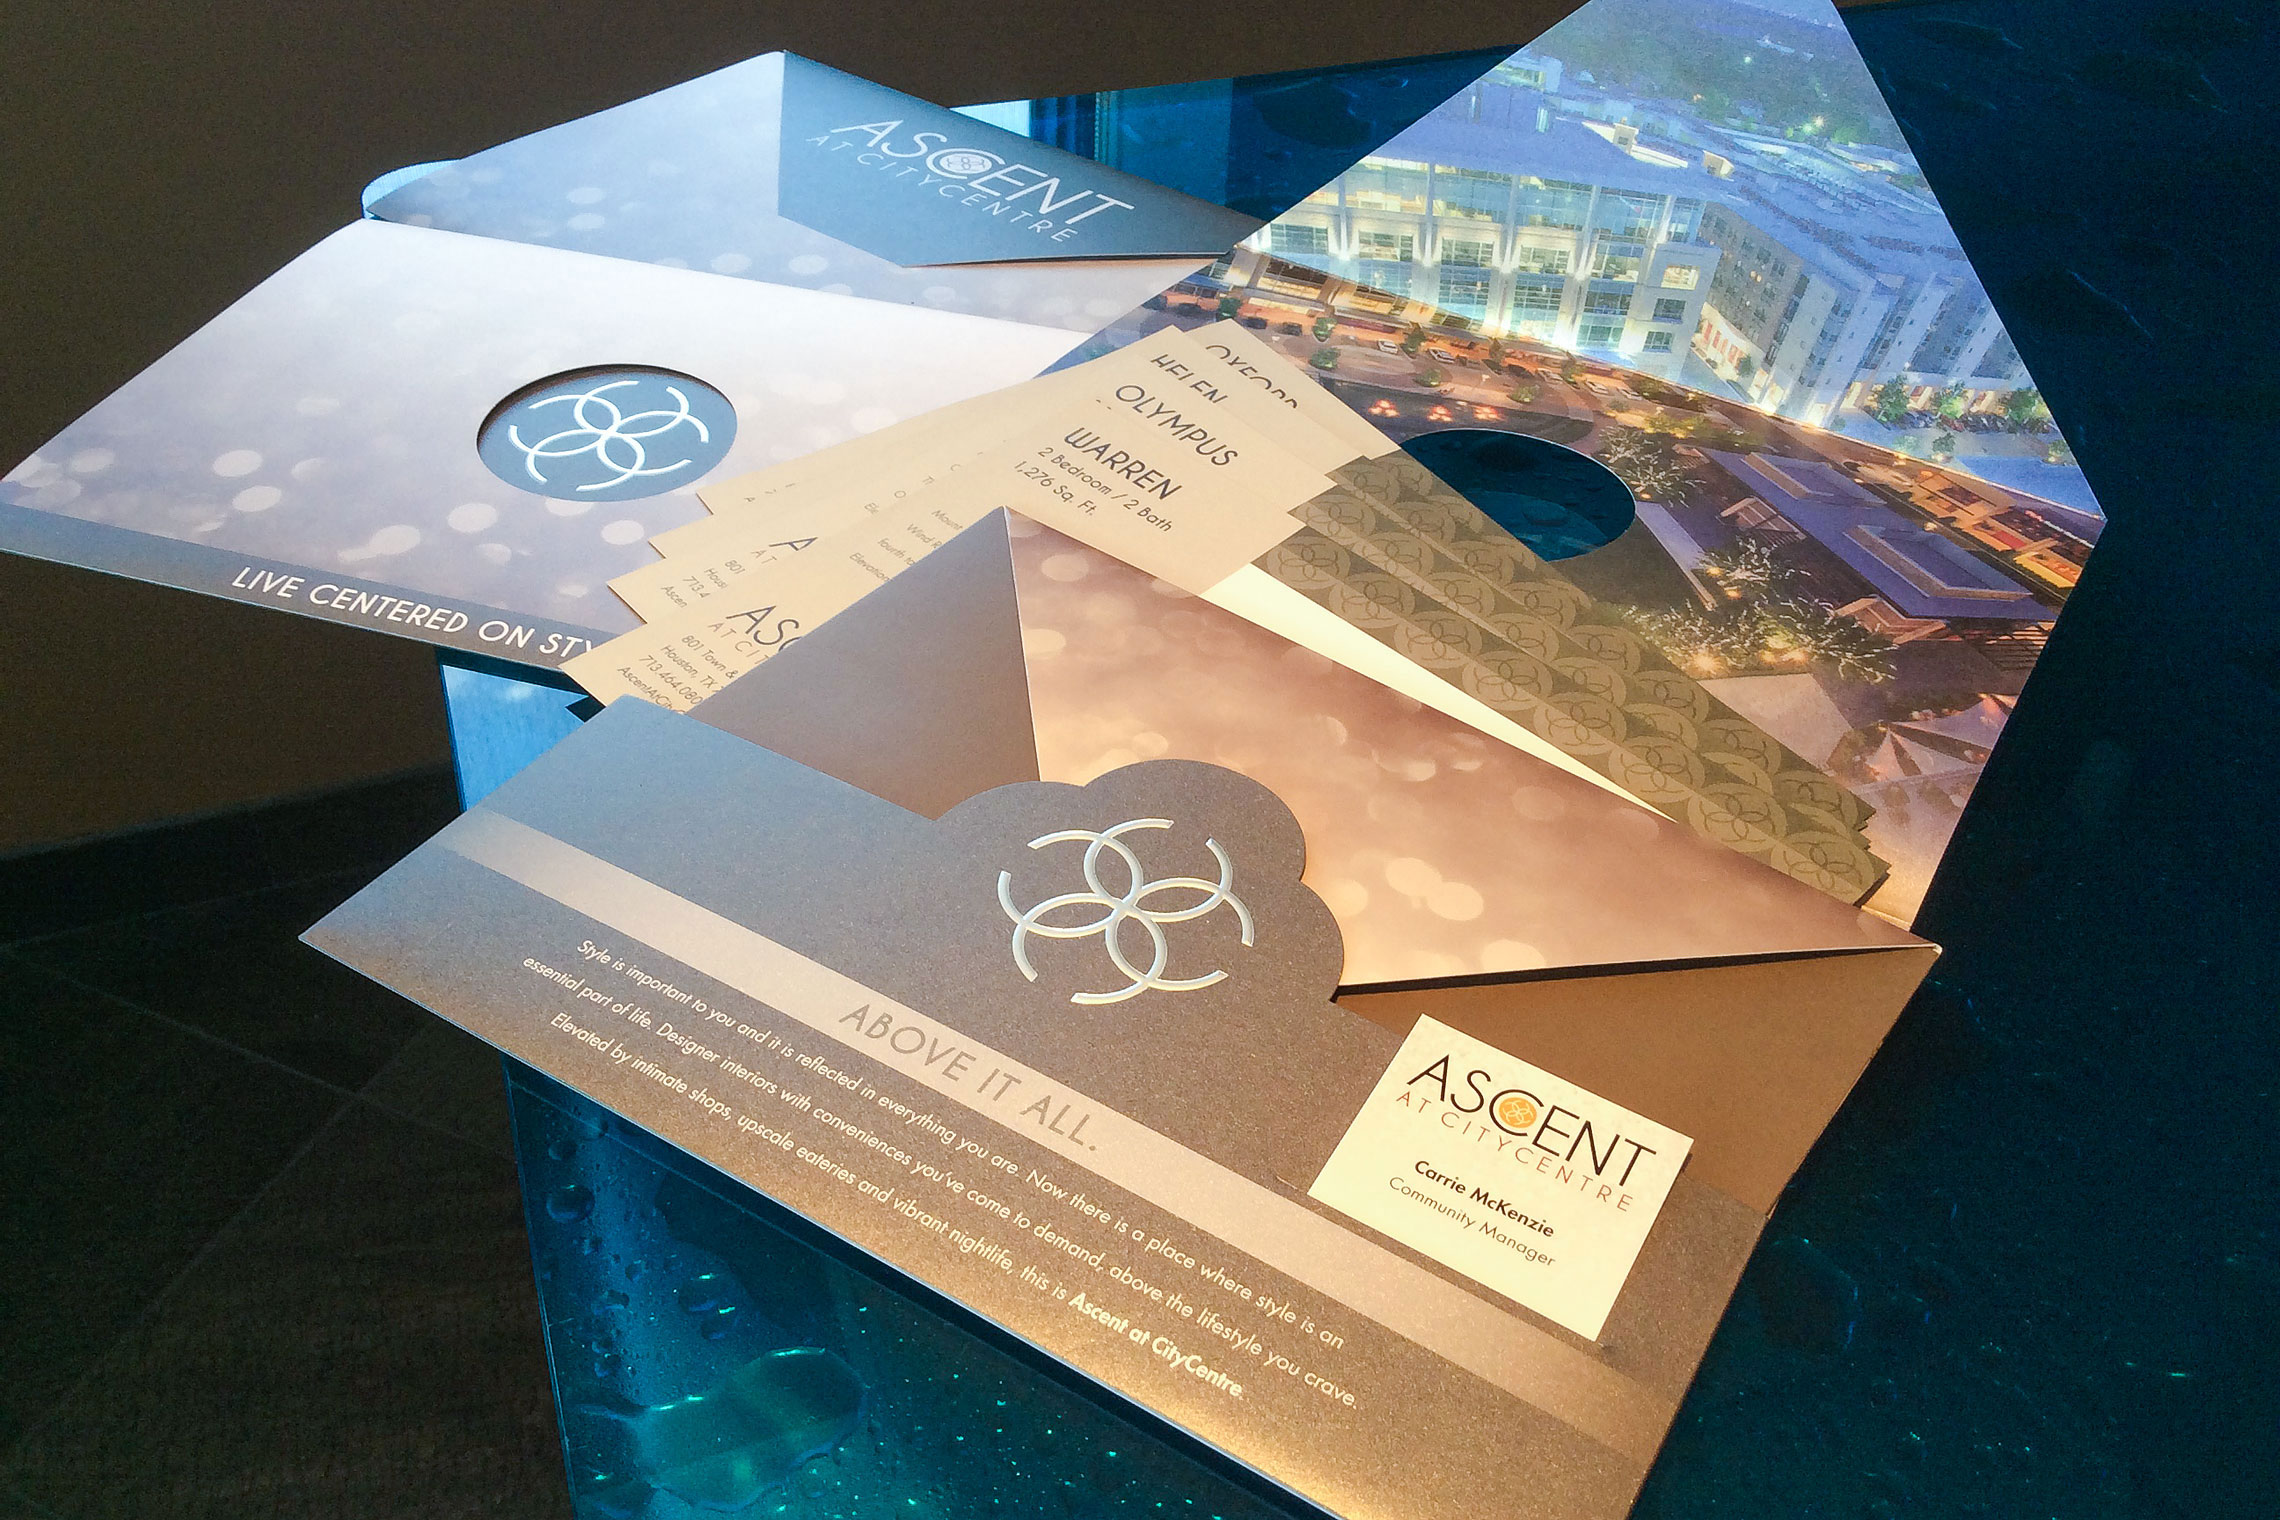 Ascent at CITYCENTRE Collateral - Pocket Folder Brochure with Amenity Fold-Out, Floor Plan Inserts and Business Card Slit